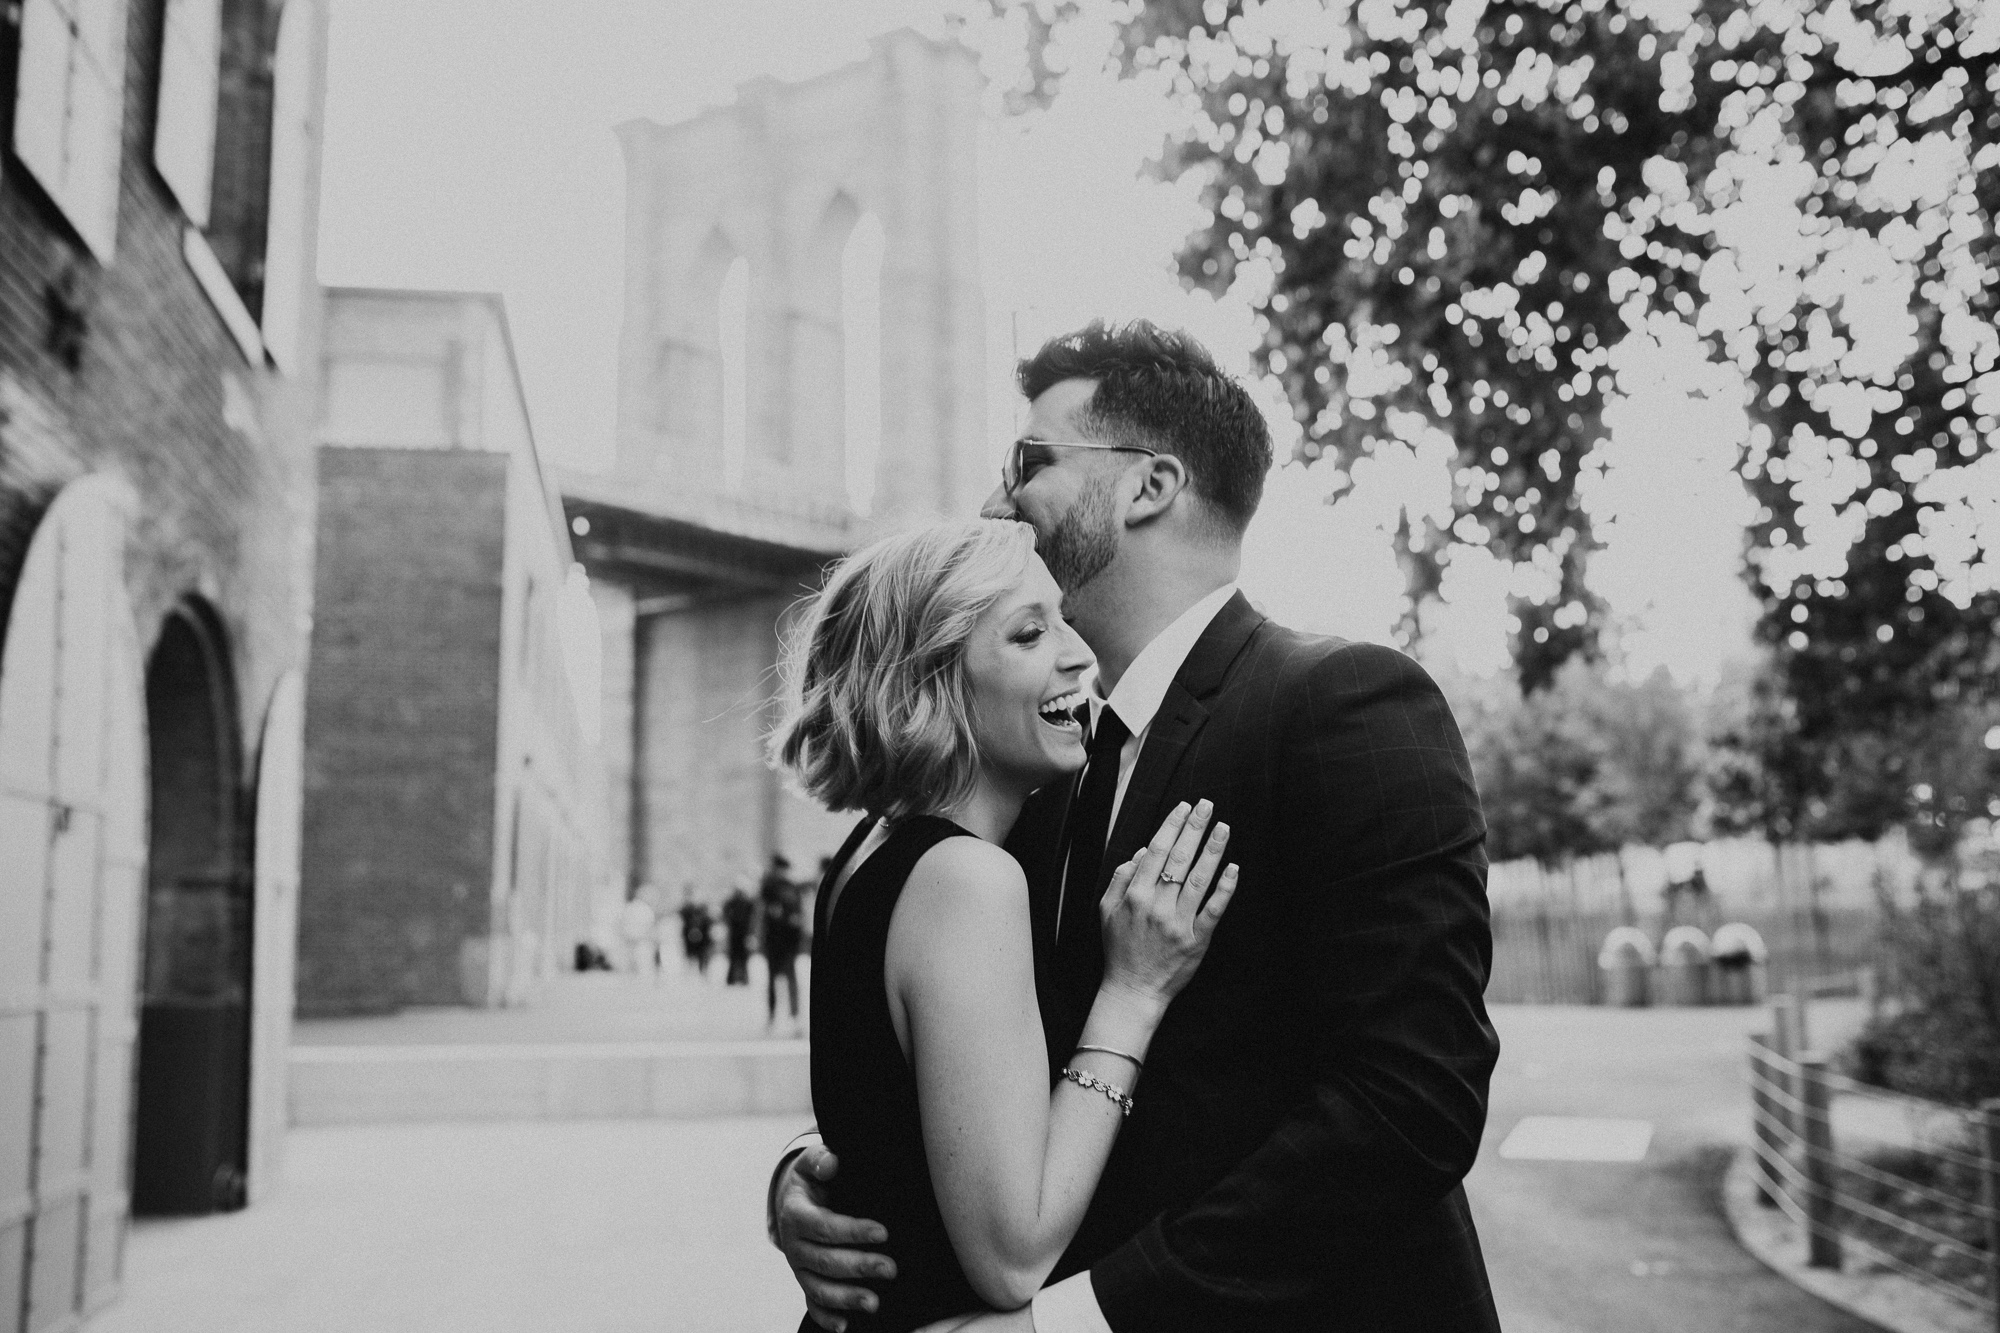 brooklyn_nyc_engagement_photography-62-of-83.jpg